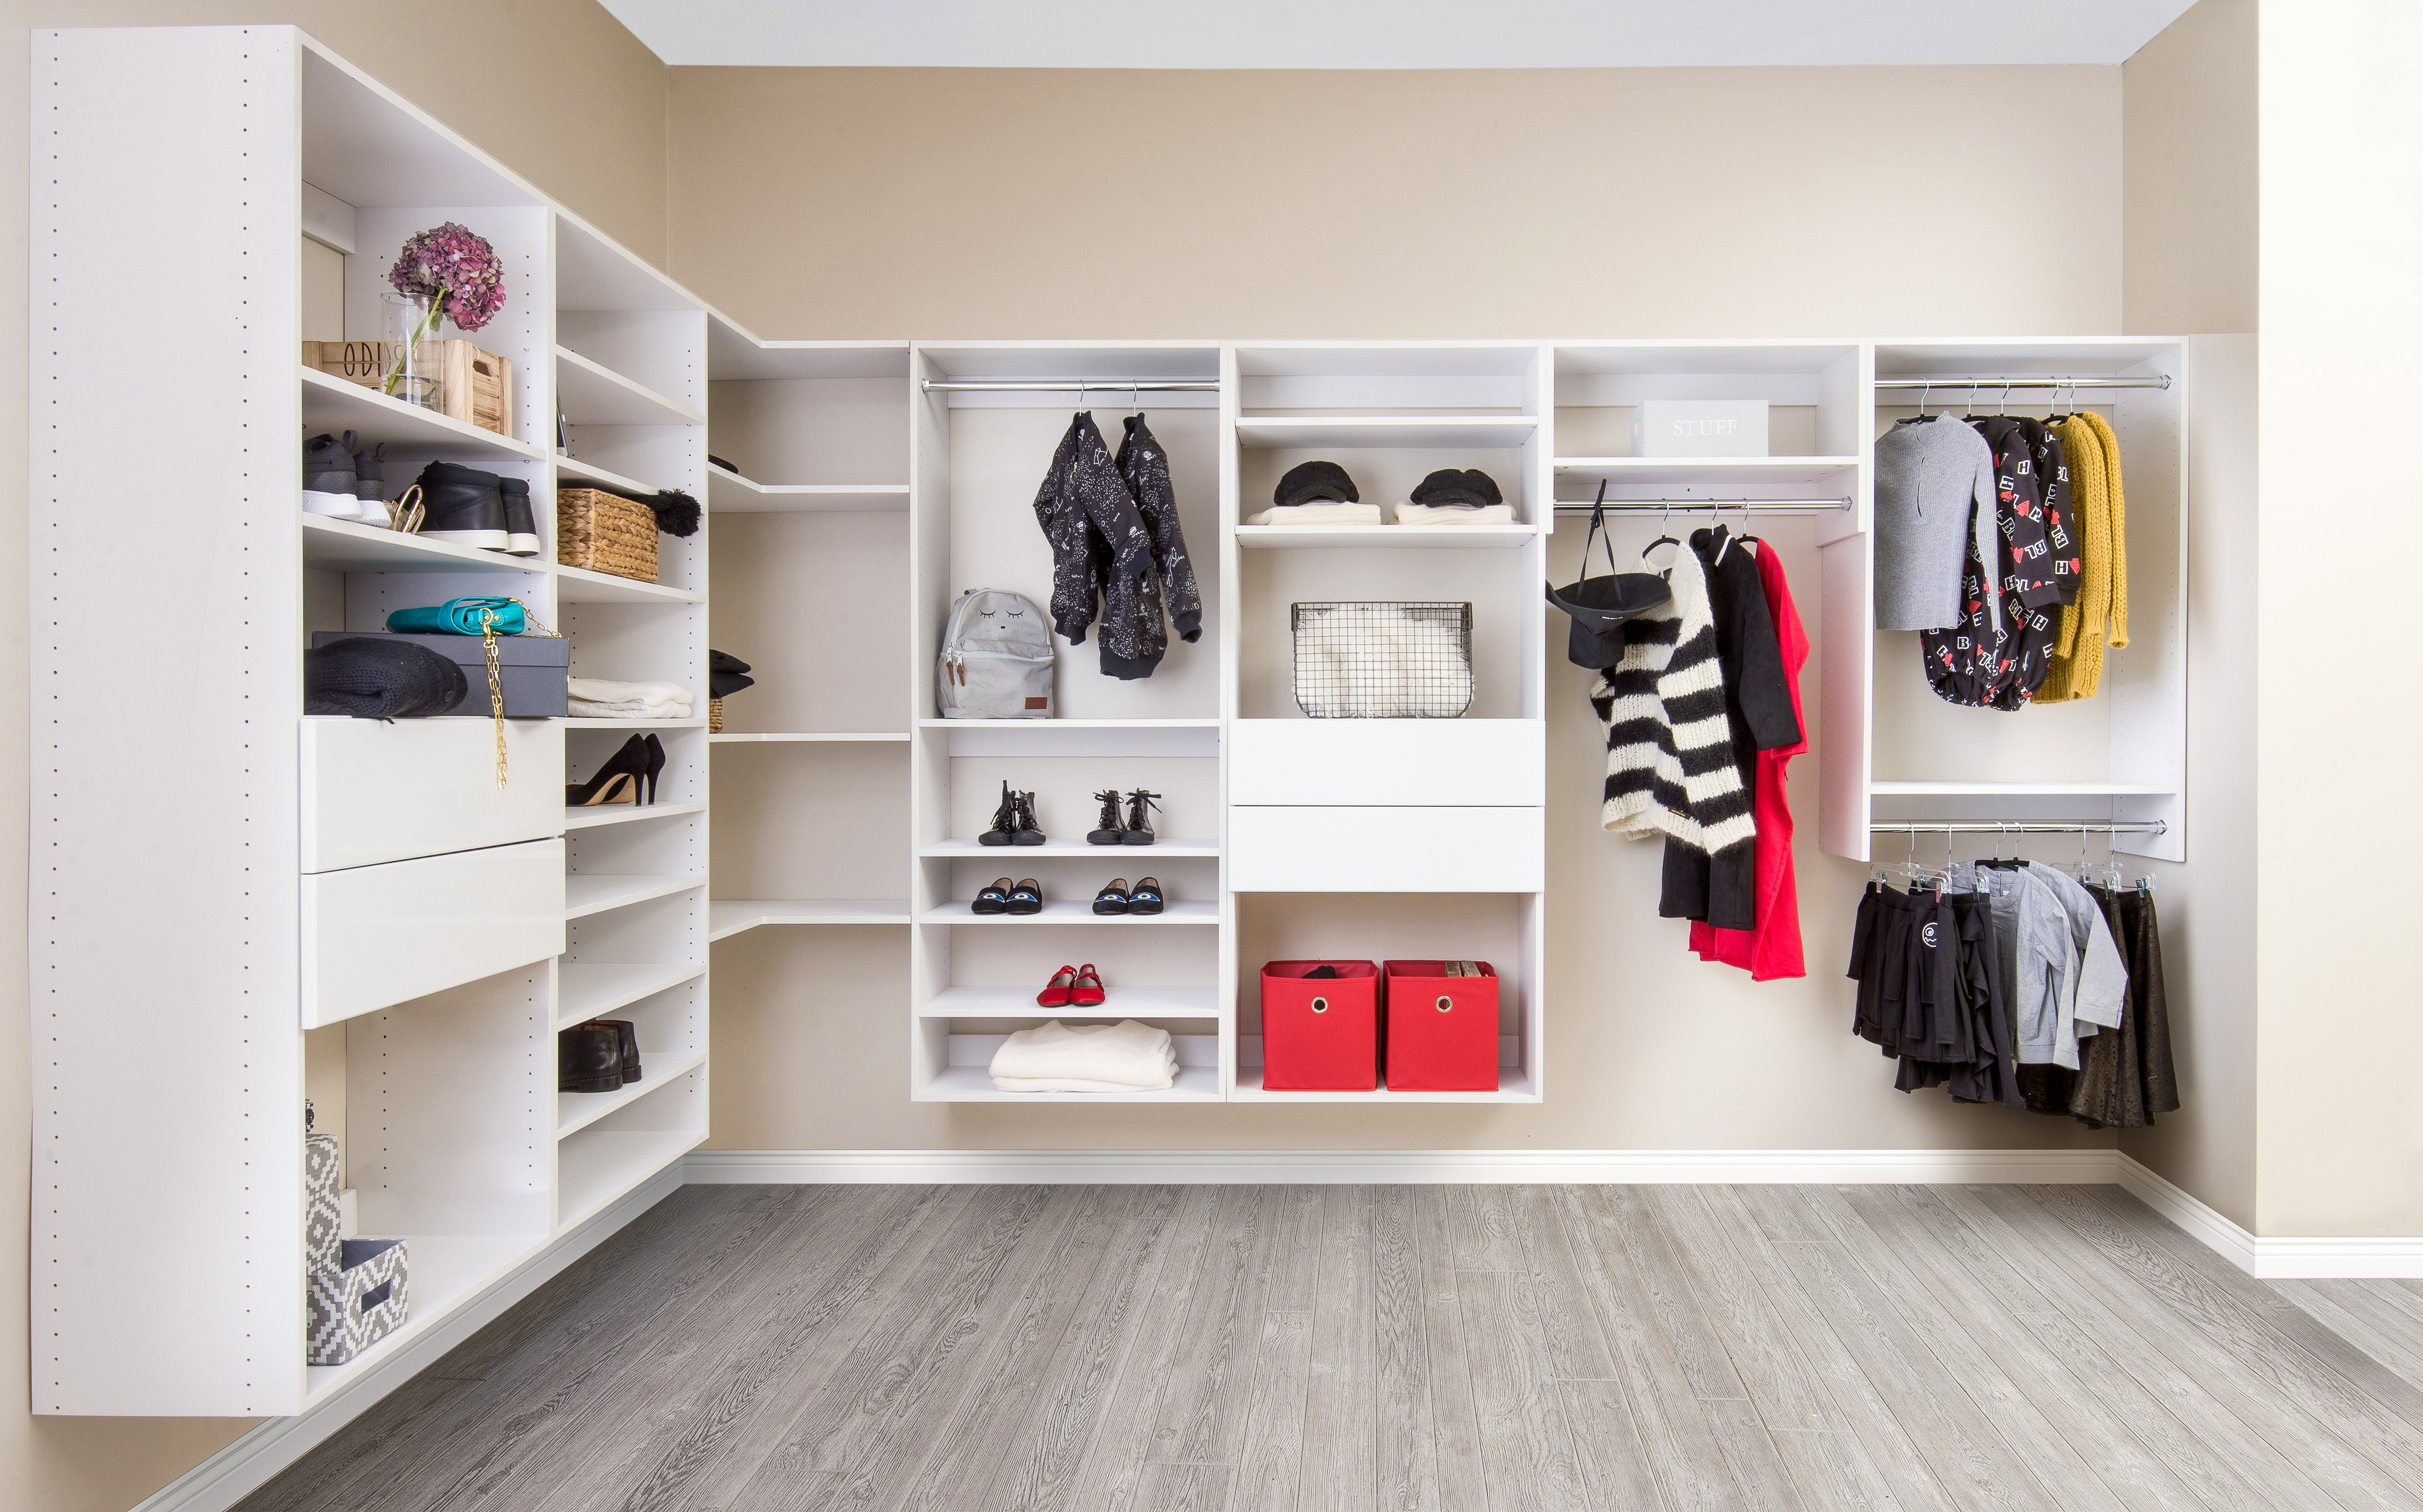 3 Of The Best Closet System Hacks To Level Up Your Home